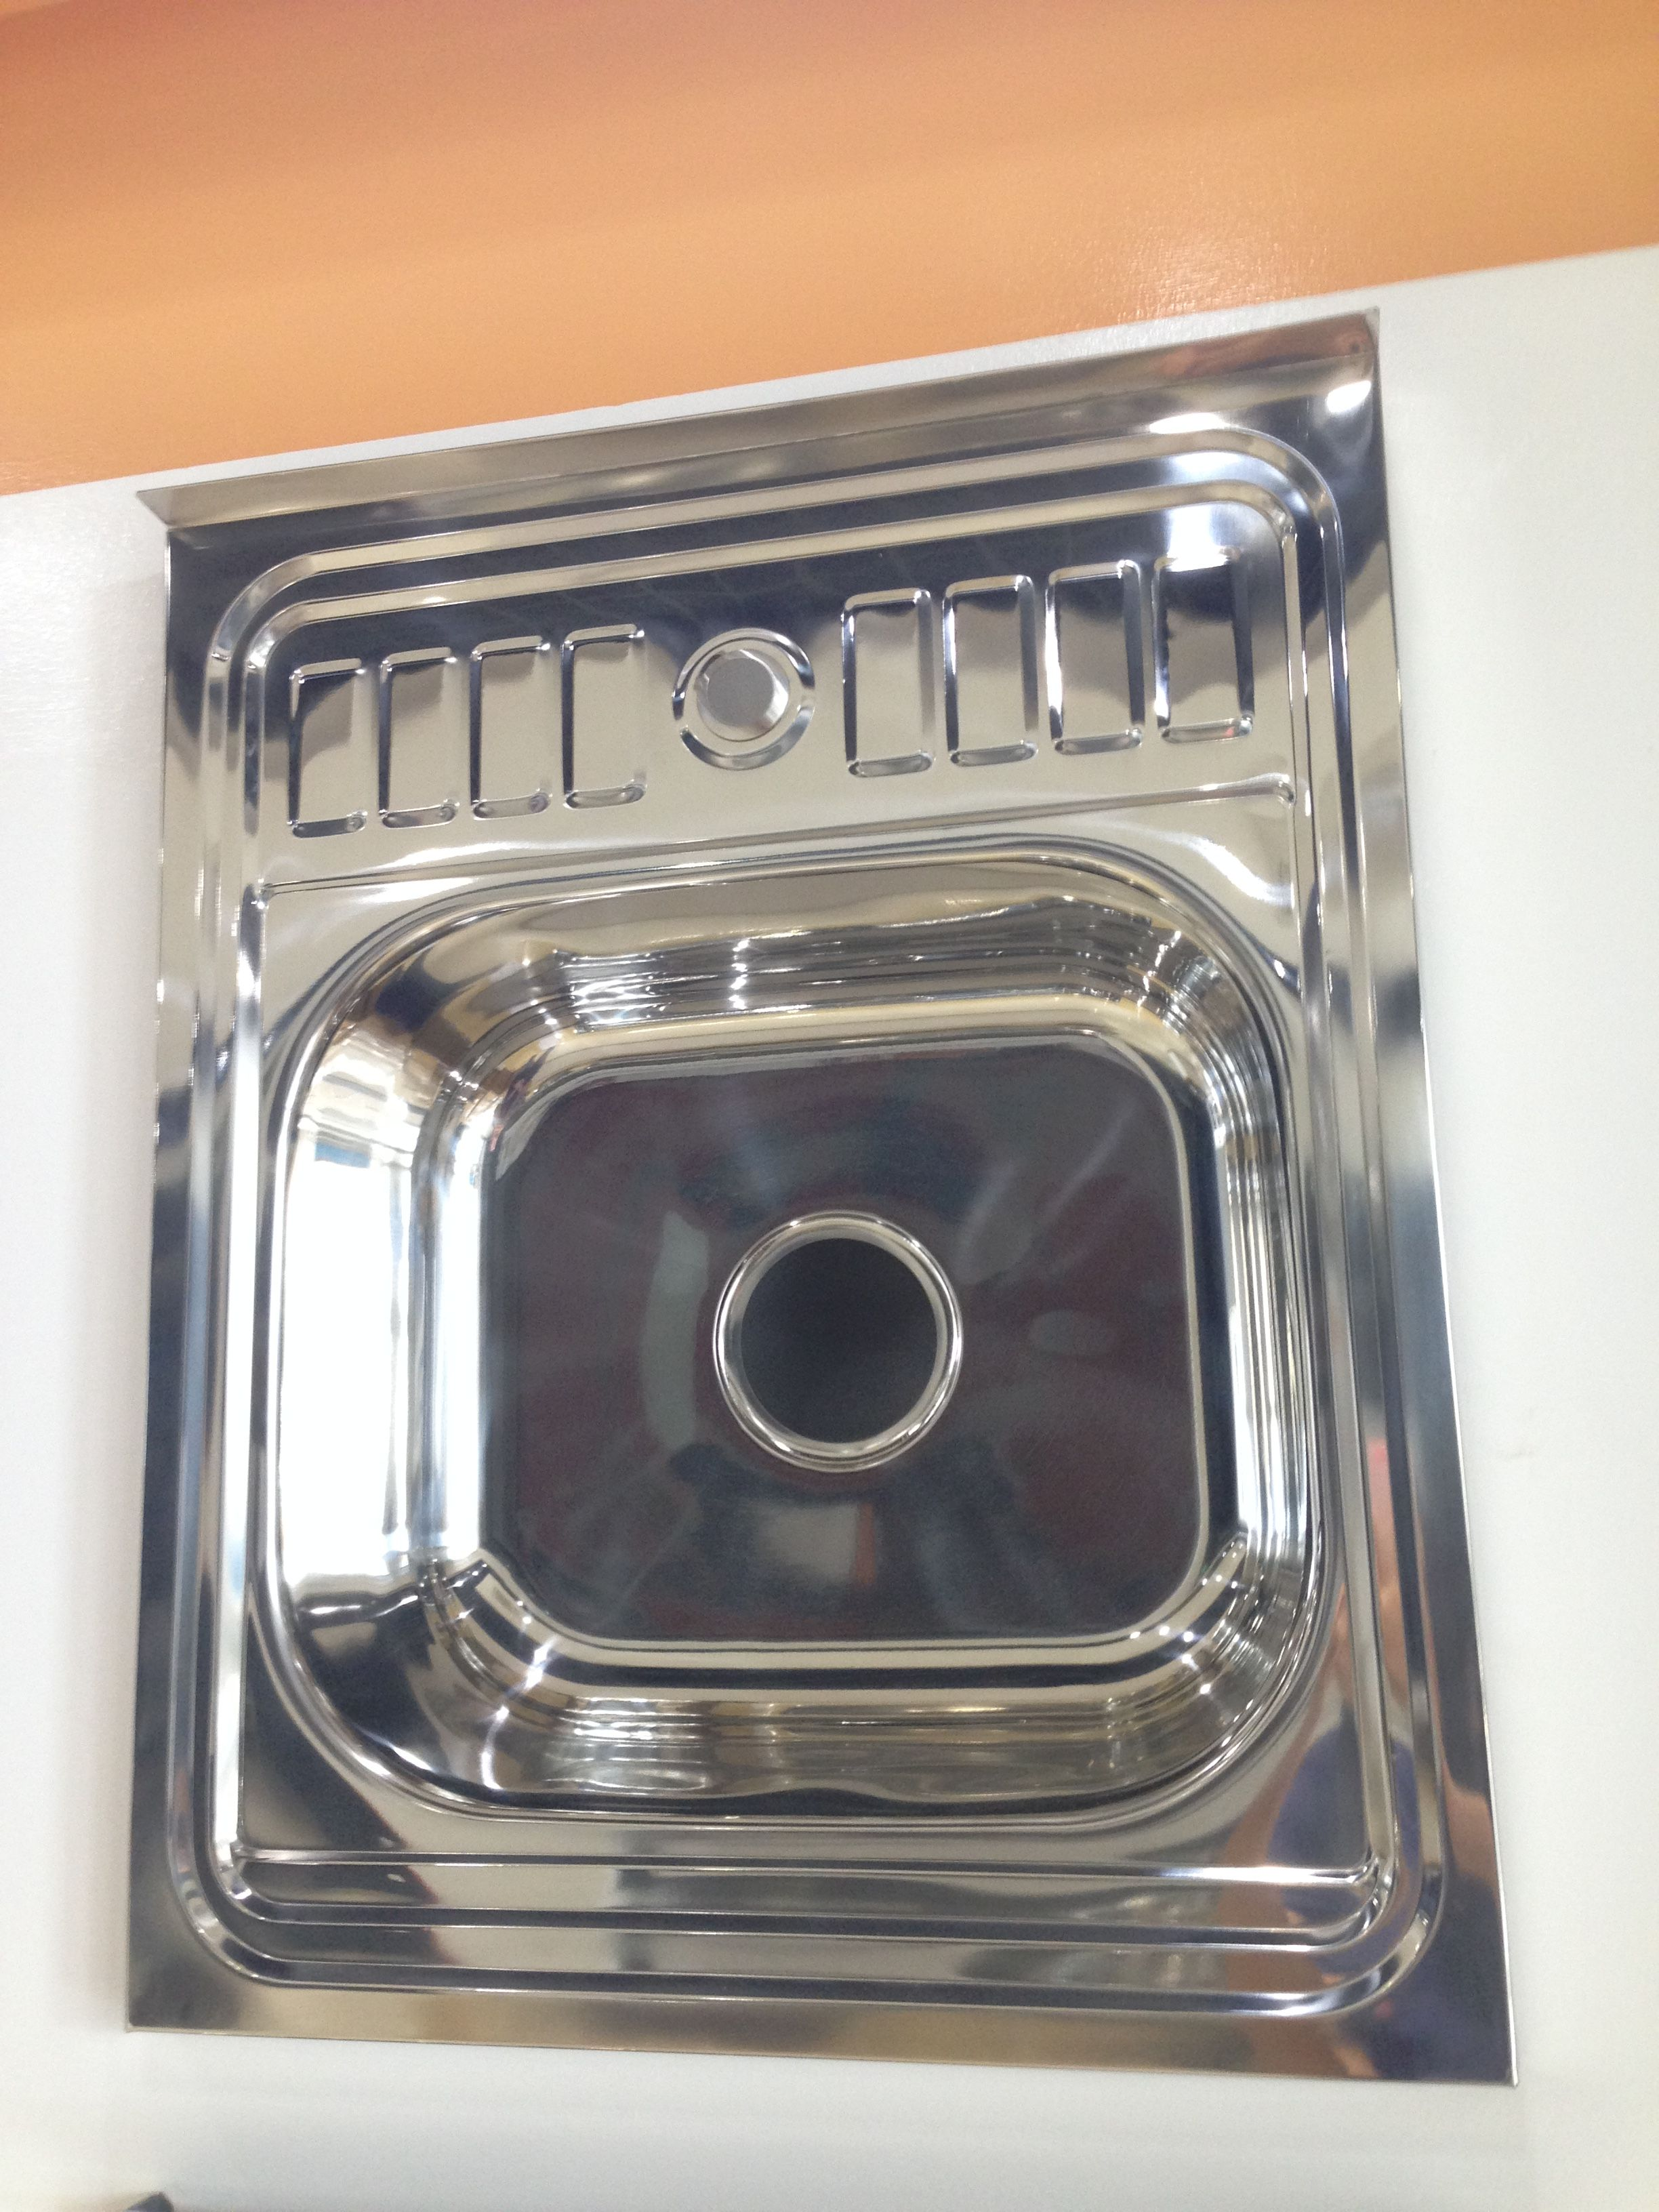 Sink factorysink manufacturerstainless steel sinkkitchen sink ltd is best double bowl kitchen sink single bowl kitchen sink and russia hot sell series supplier we has good quality products service from china workwithnaturefo